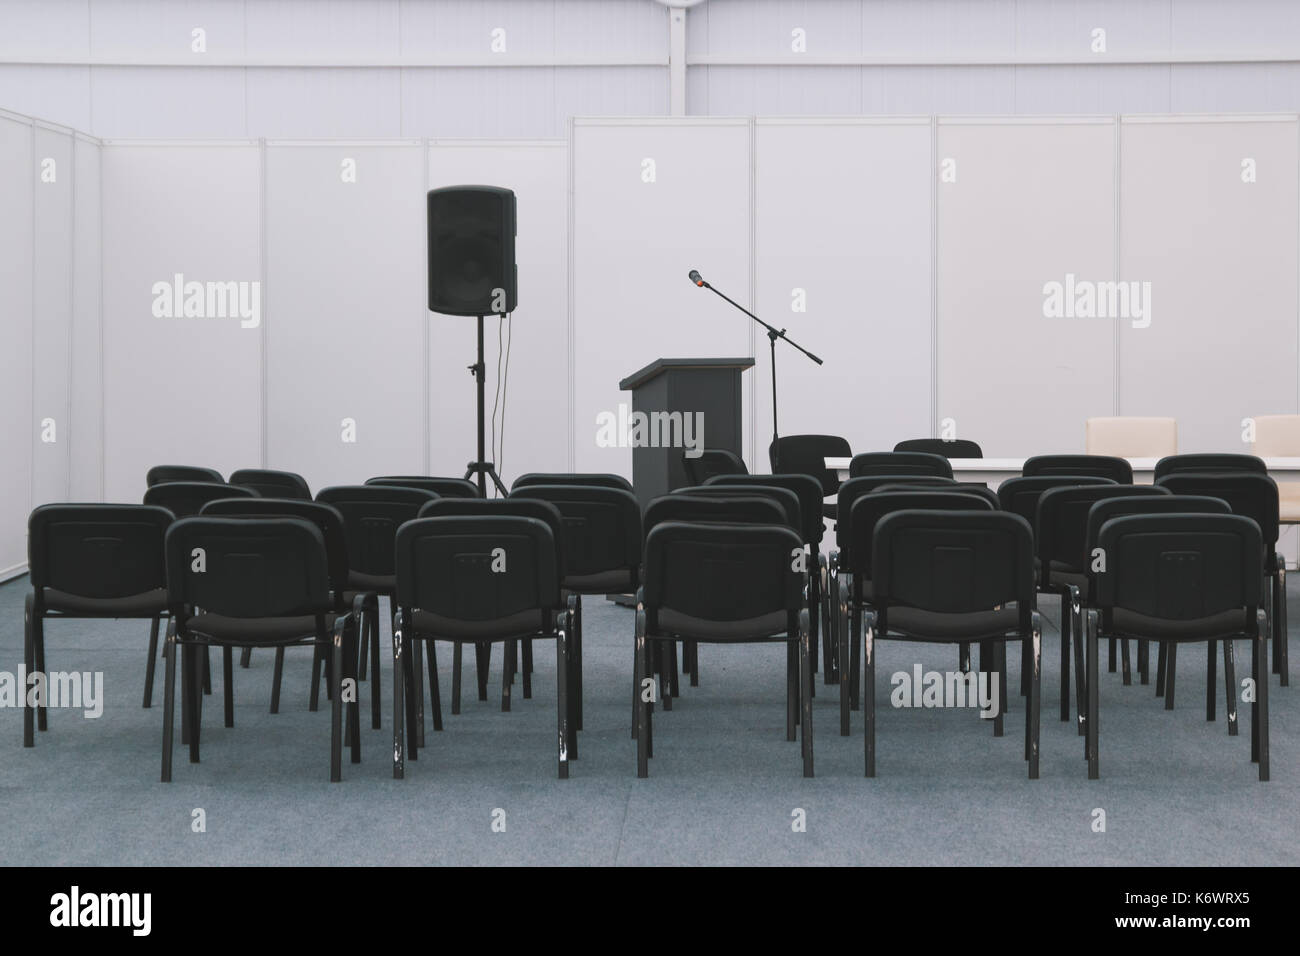 A lot of chairs in meeting or conferences room - Stock Image